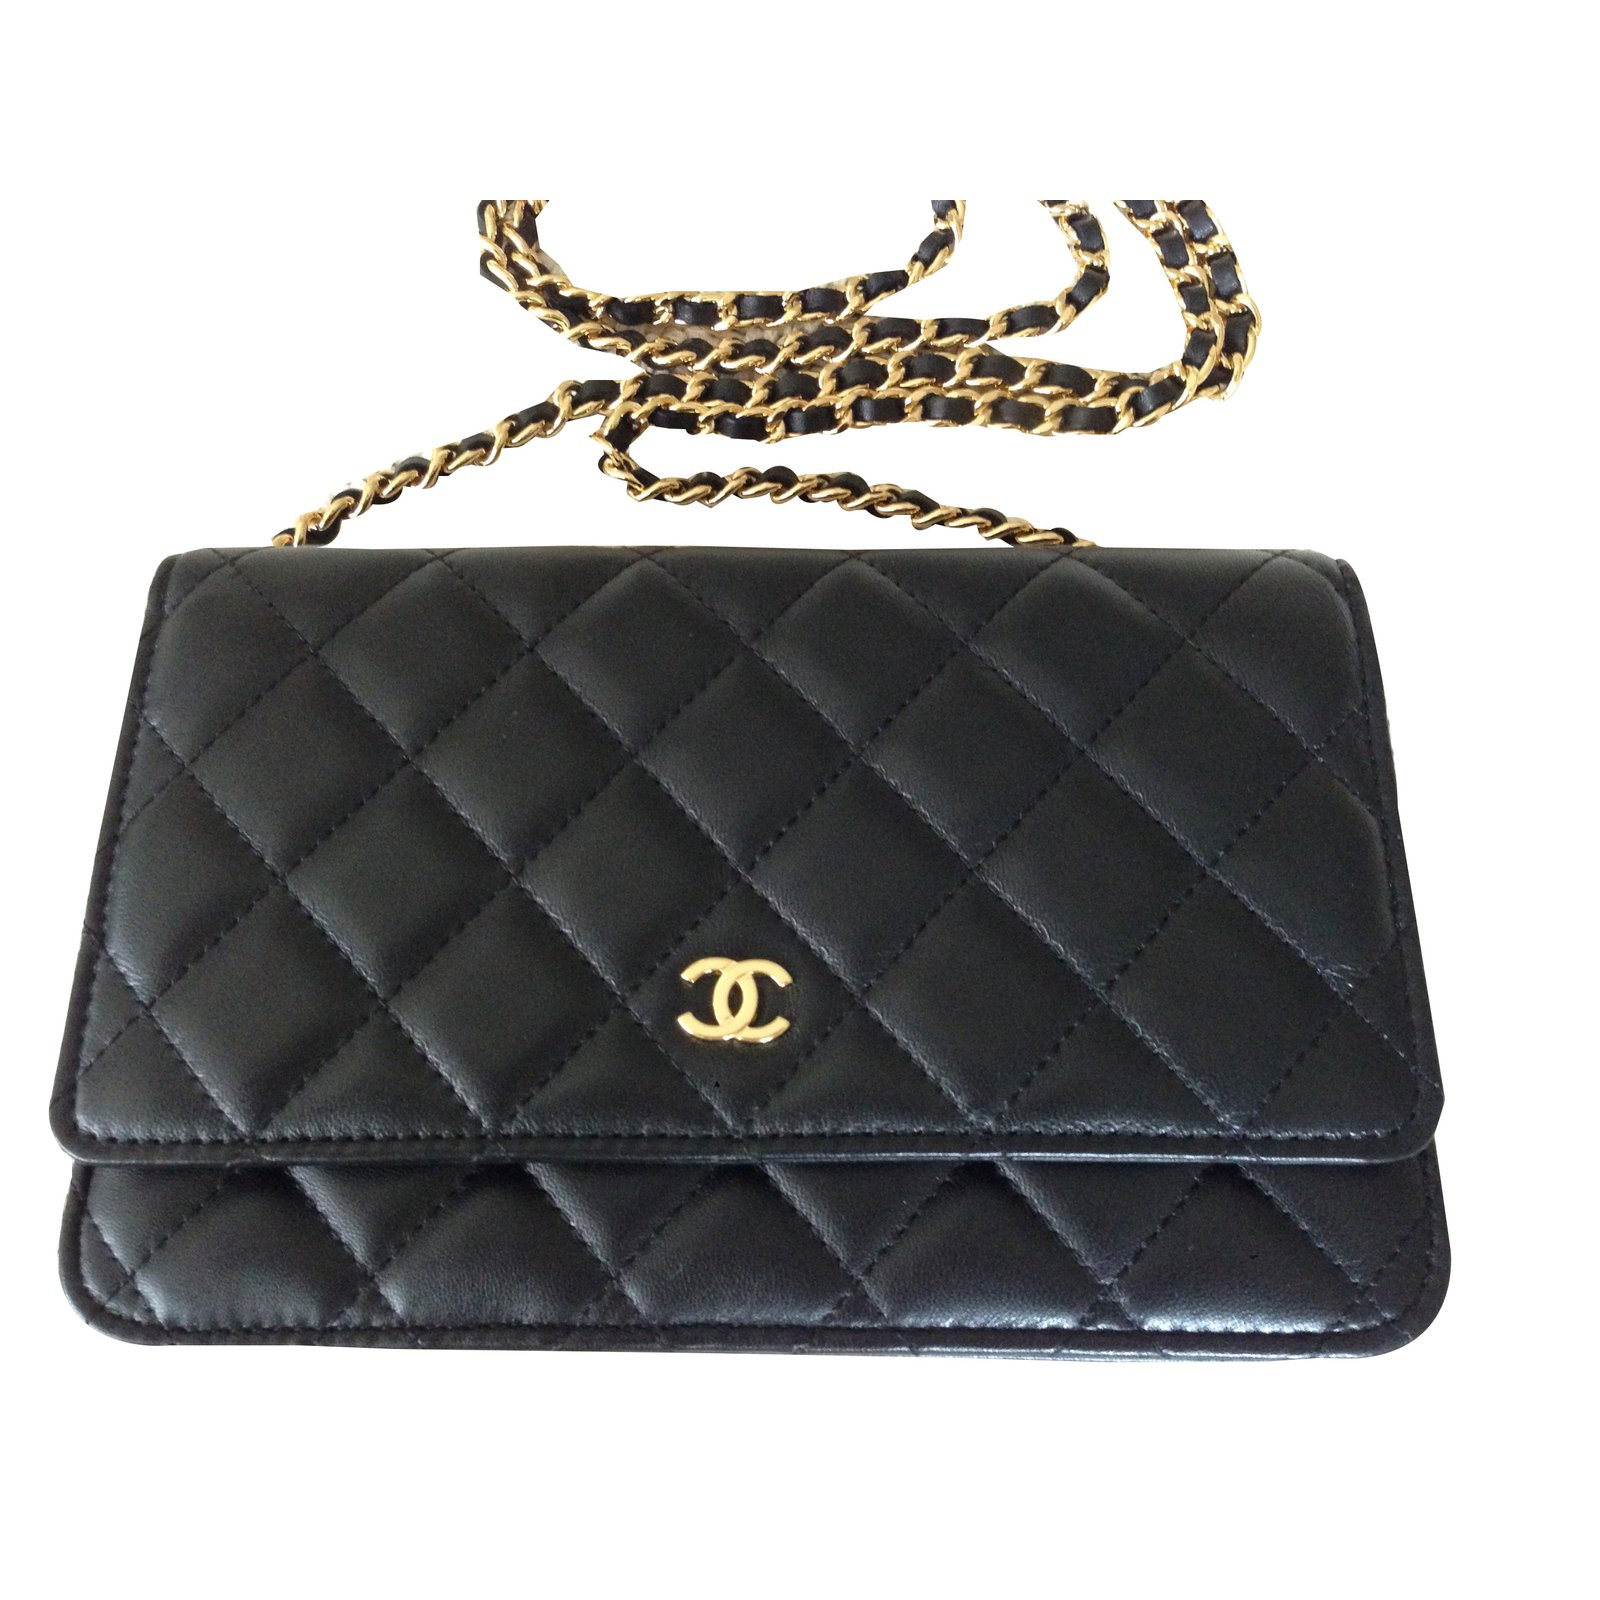 chanel-black-leather-wallet-on-chain-handbags.jpg